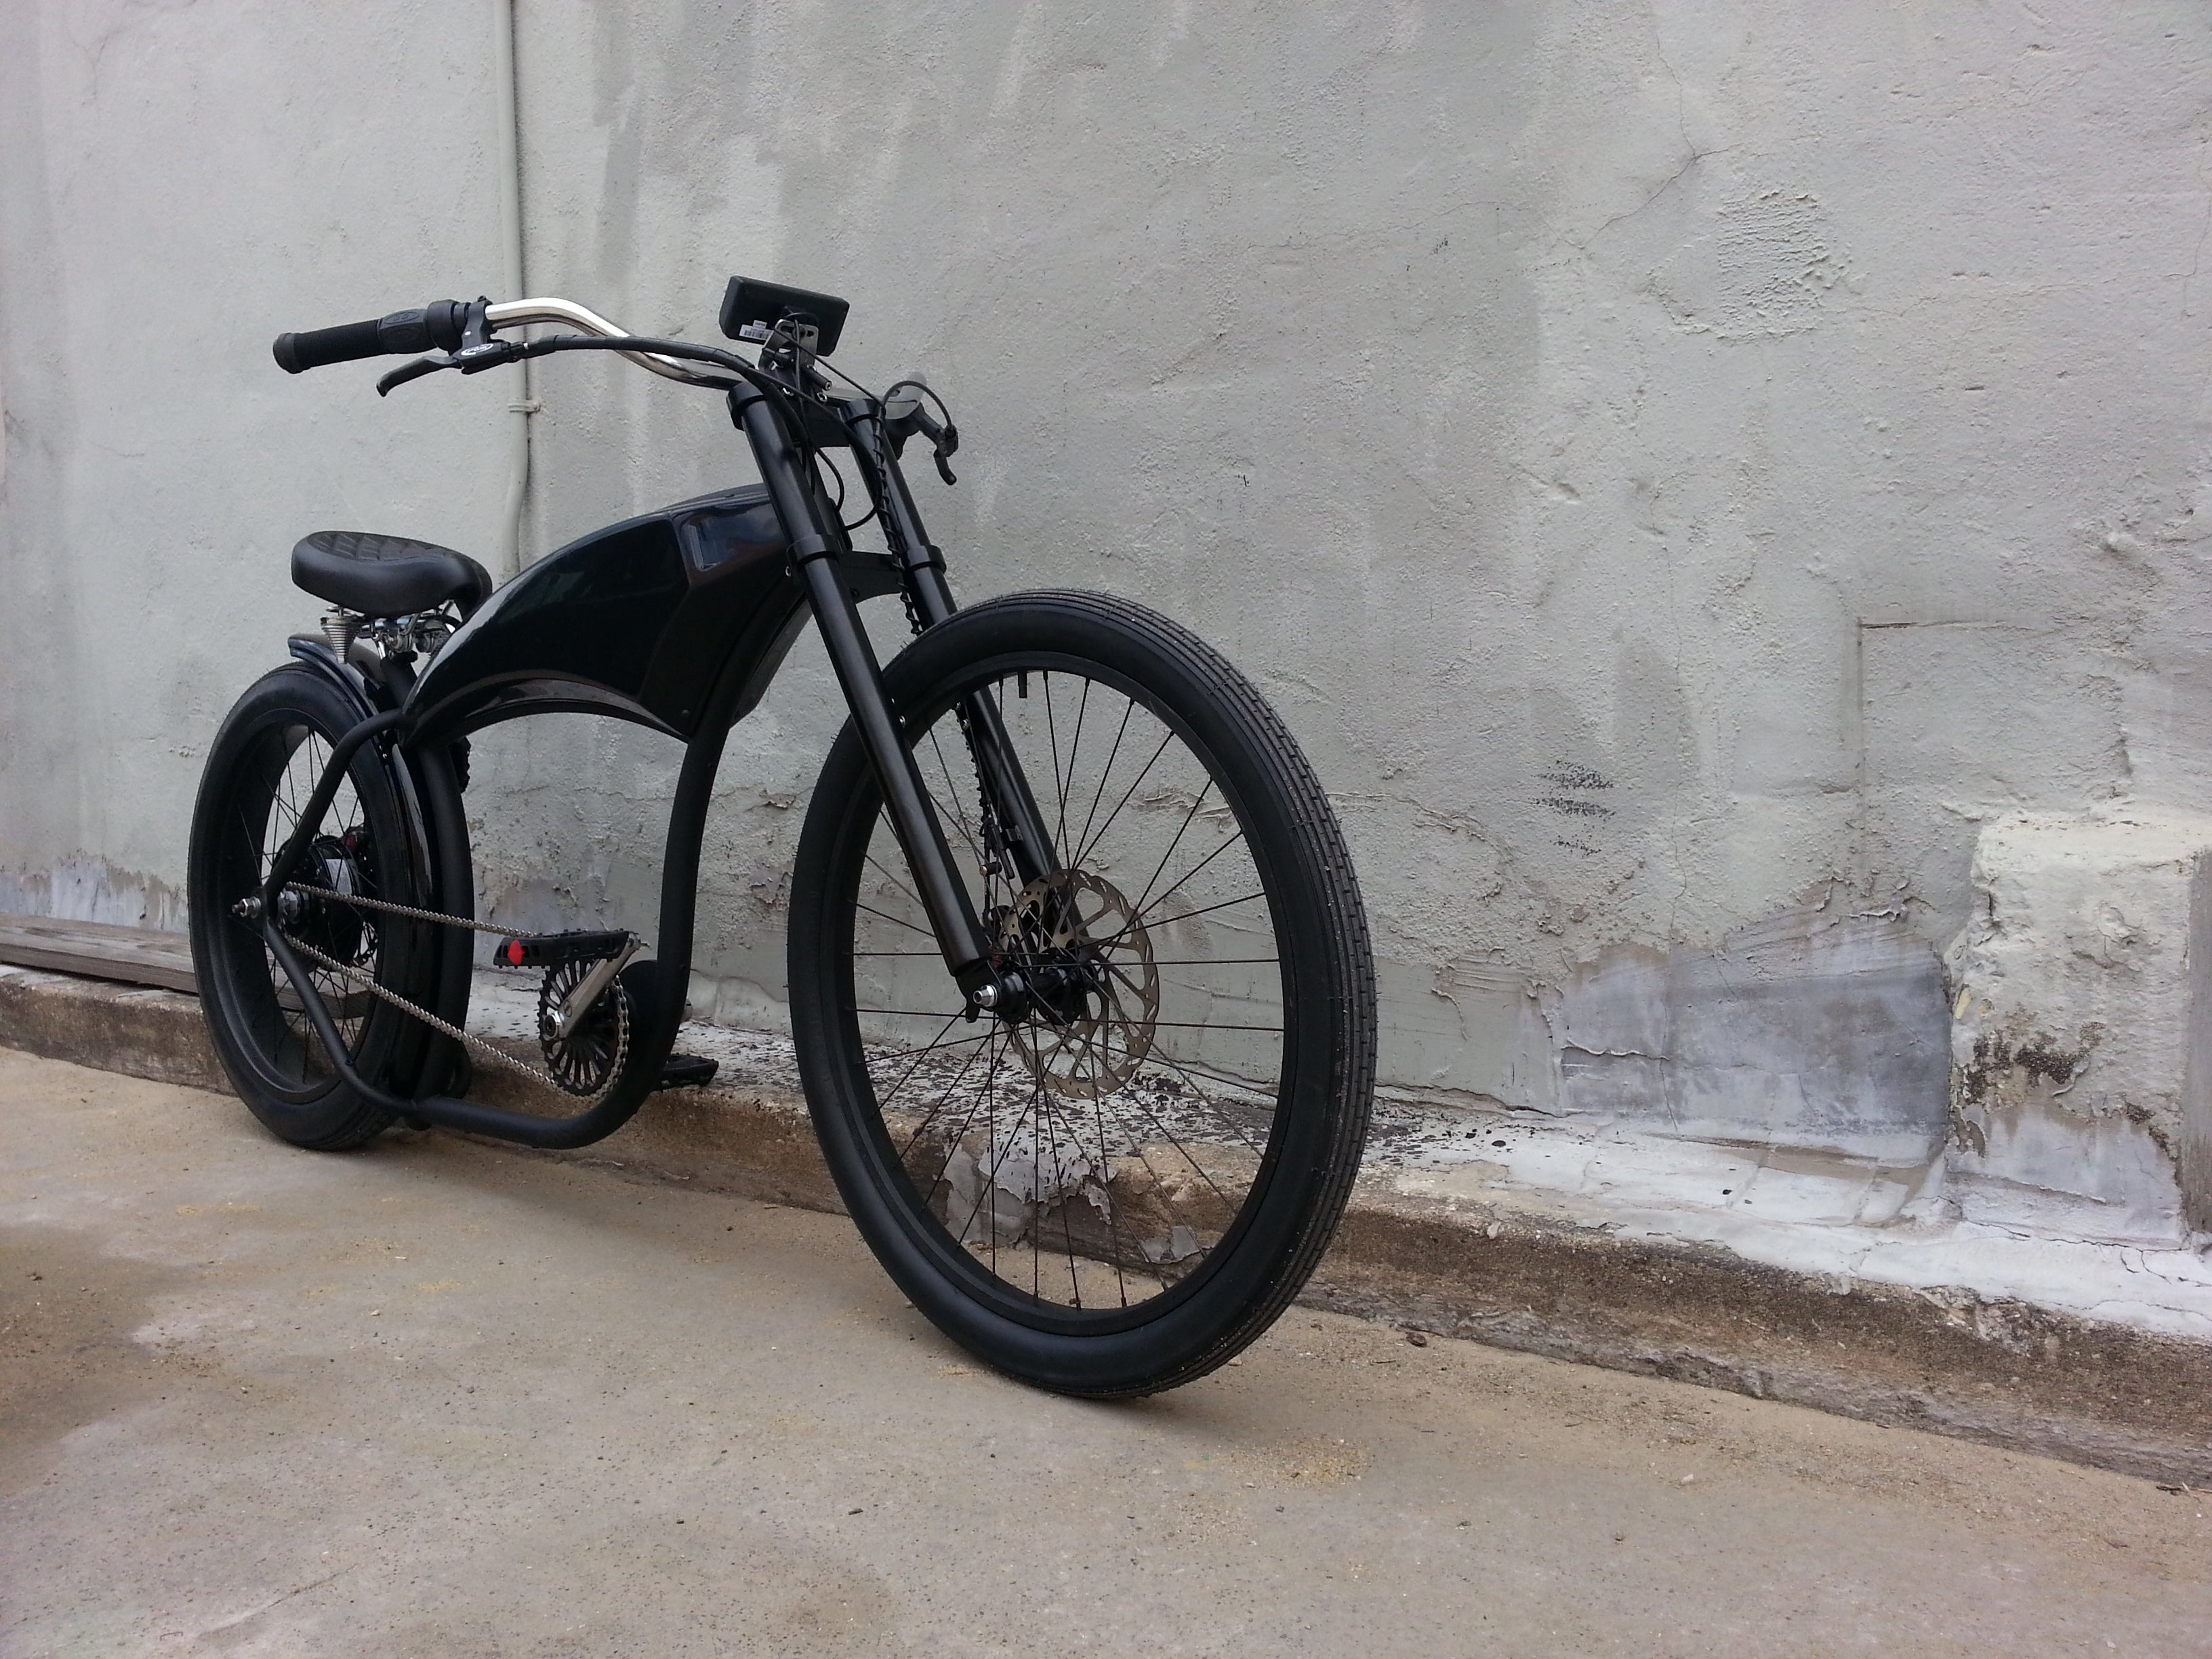 Front Right view of Dark Horse Electric Street Bike